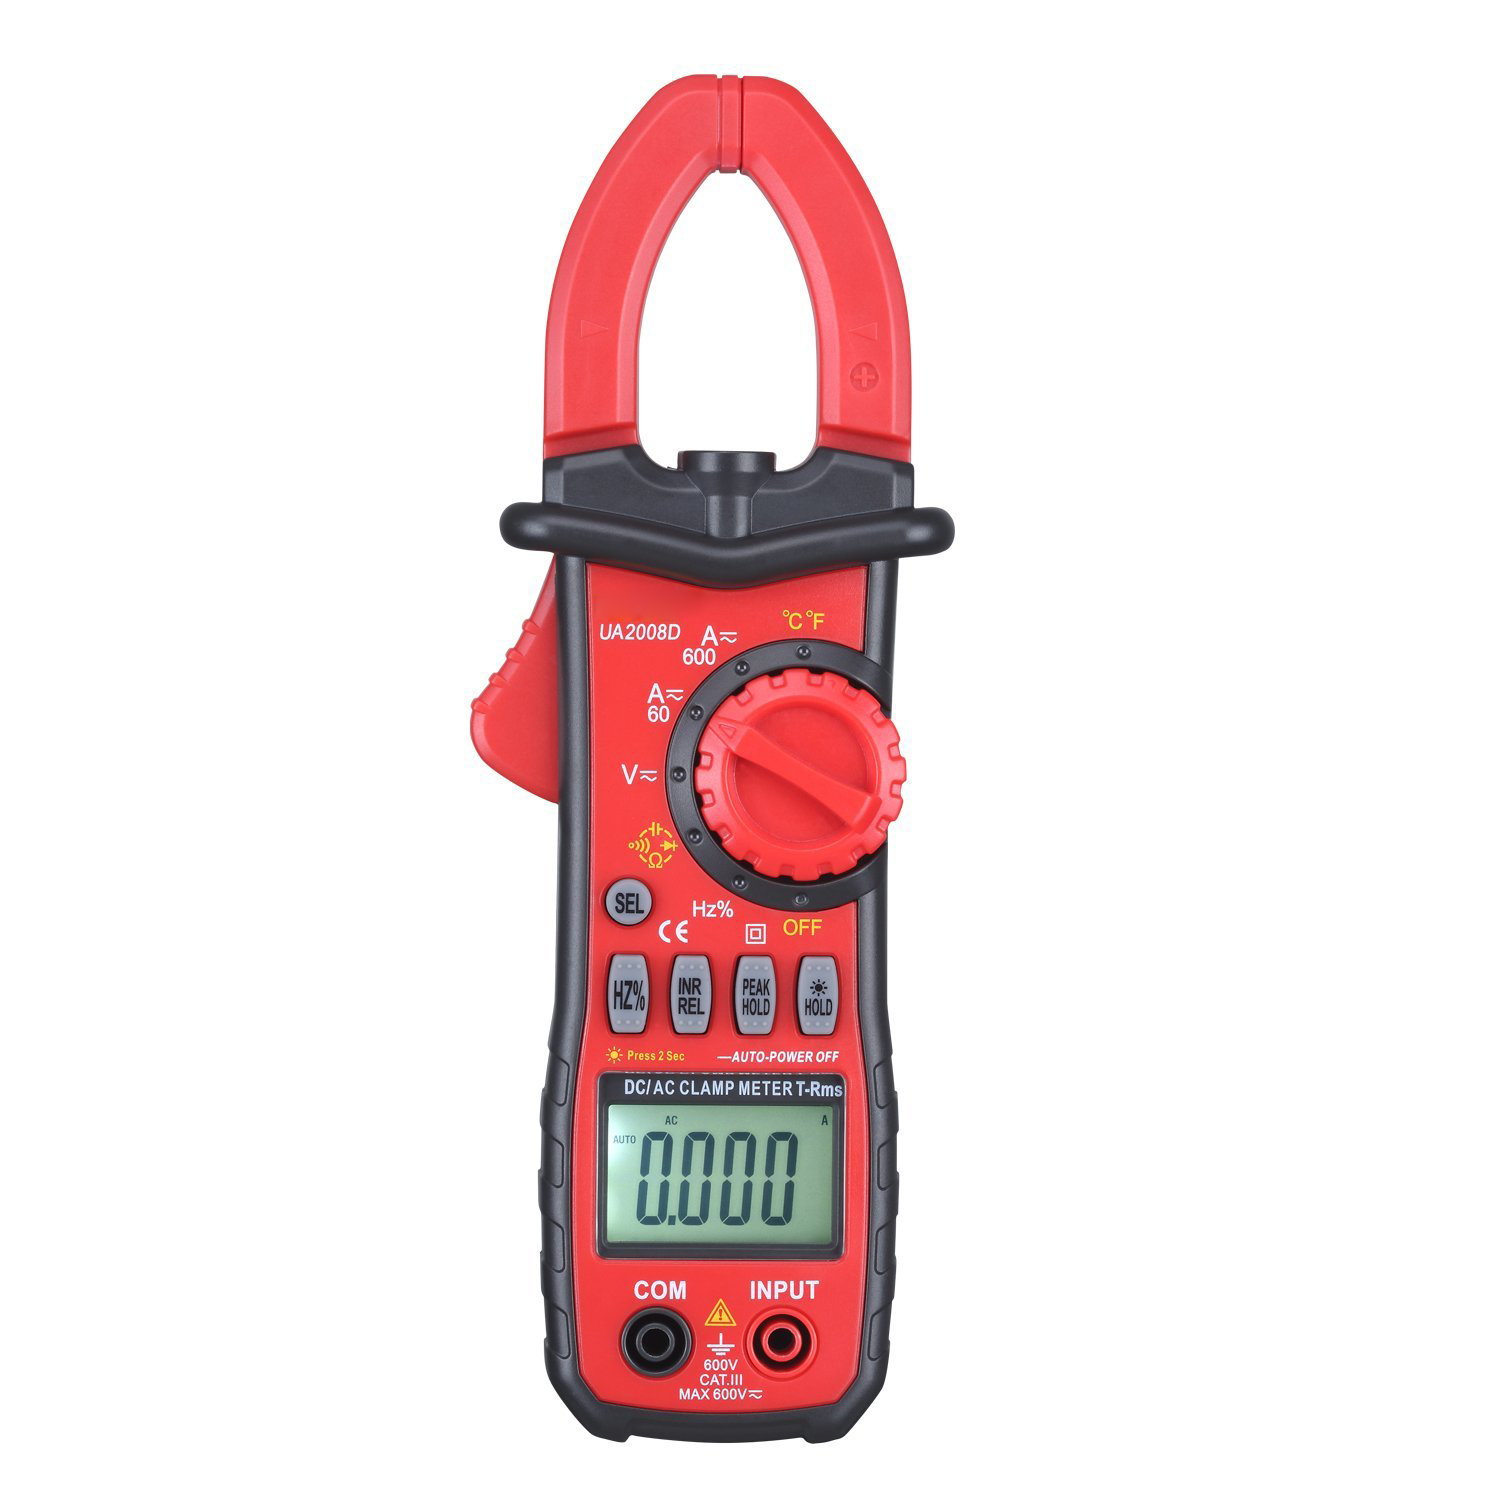 UYIGAO 600A AC Clamp Meter Digital Multimeter with Resistance Capacitance,Temperature,Frequency, Voltage, Current